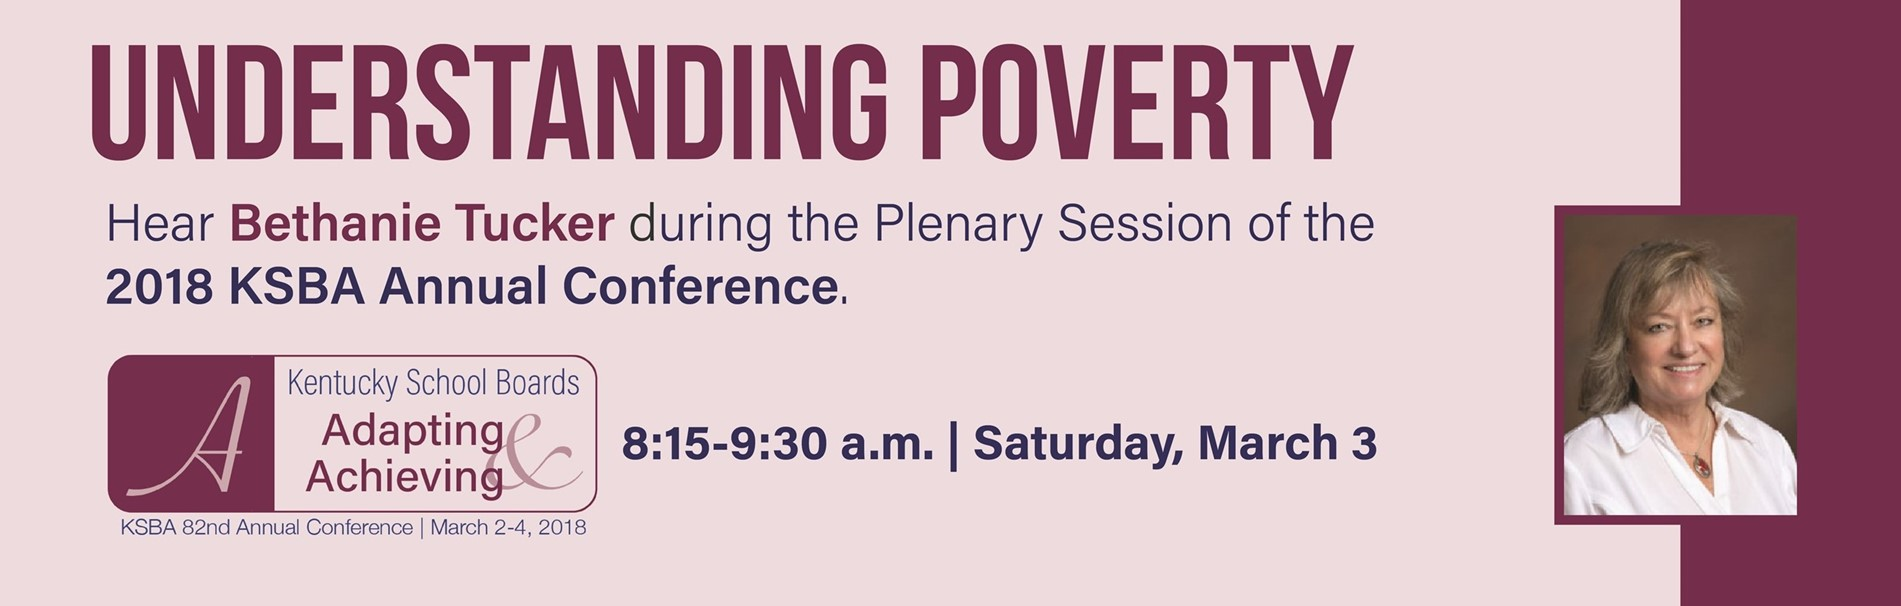 Bethanie Tucker will discuss Understanding Poverty at the KSBA Annual Conference.